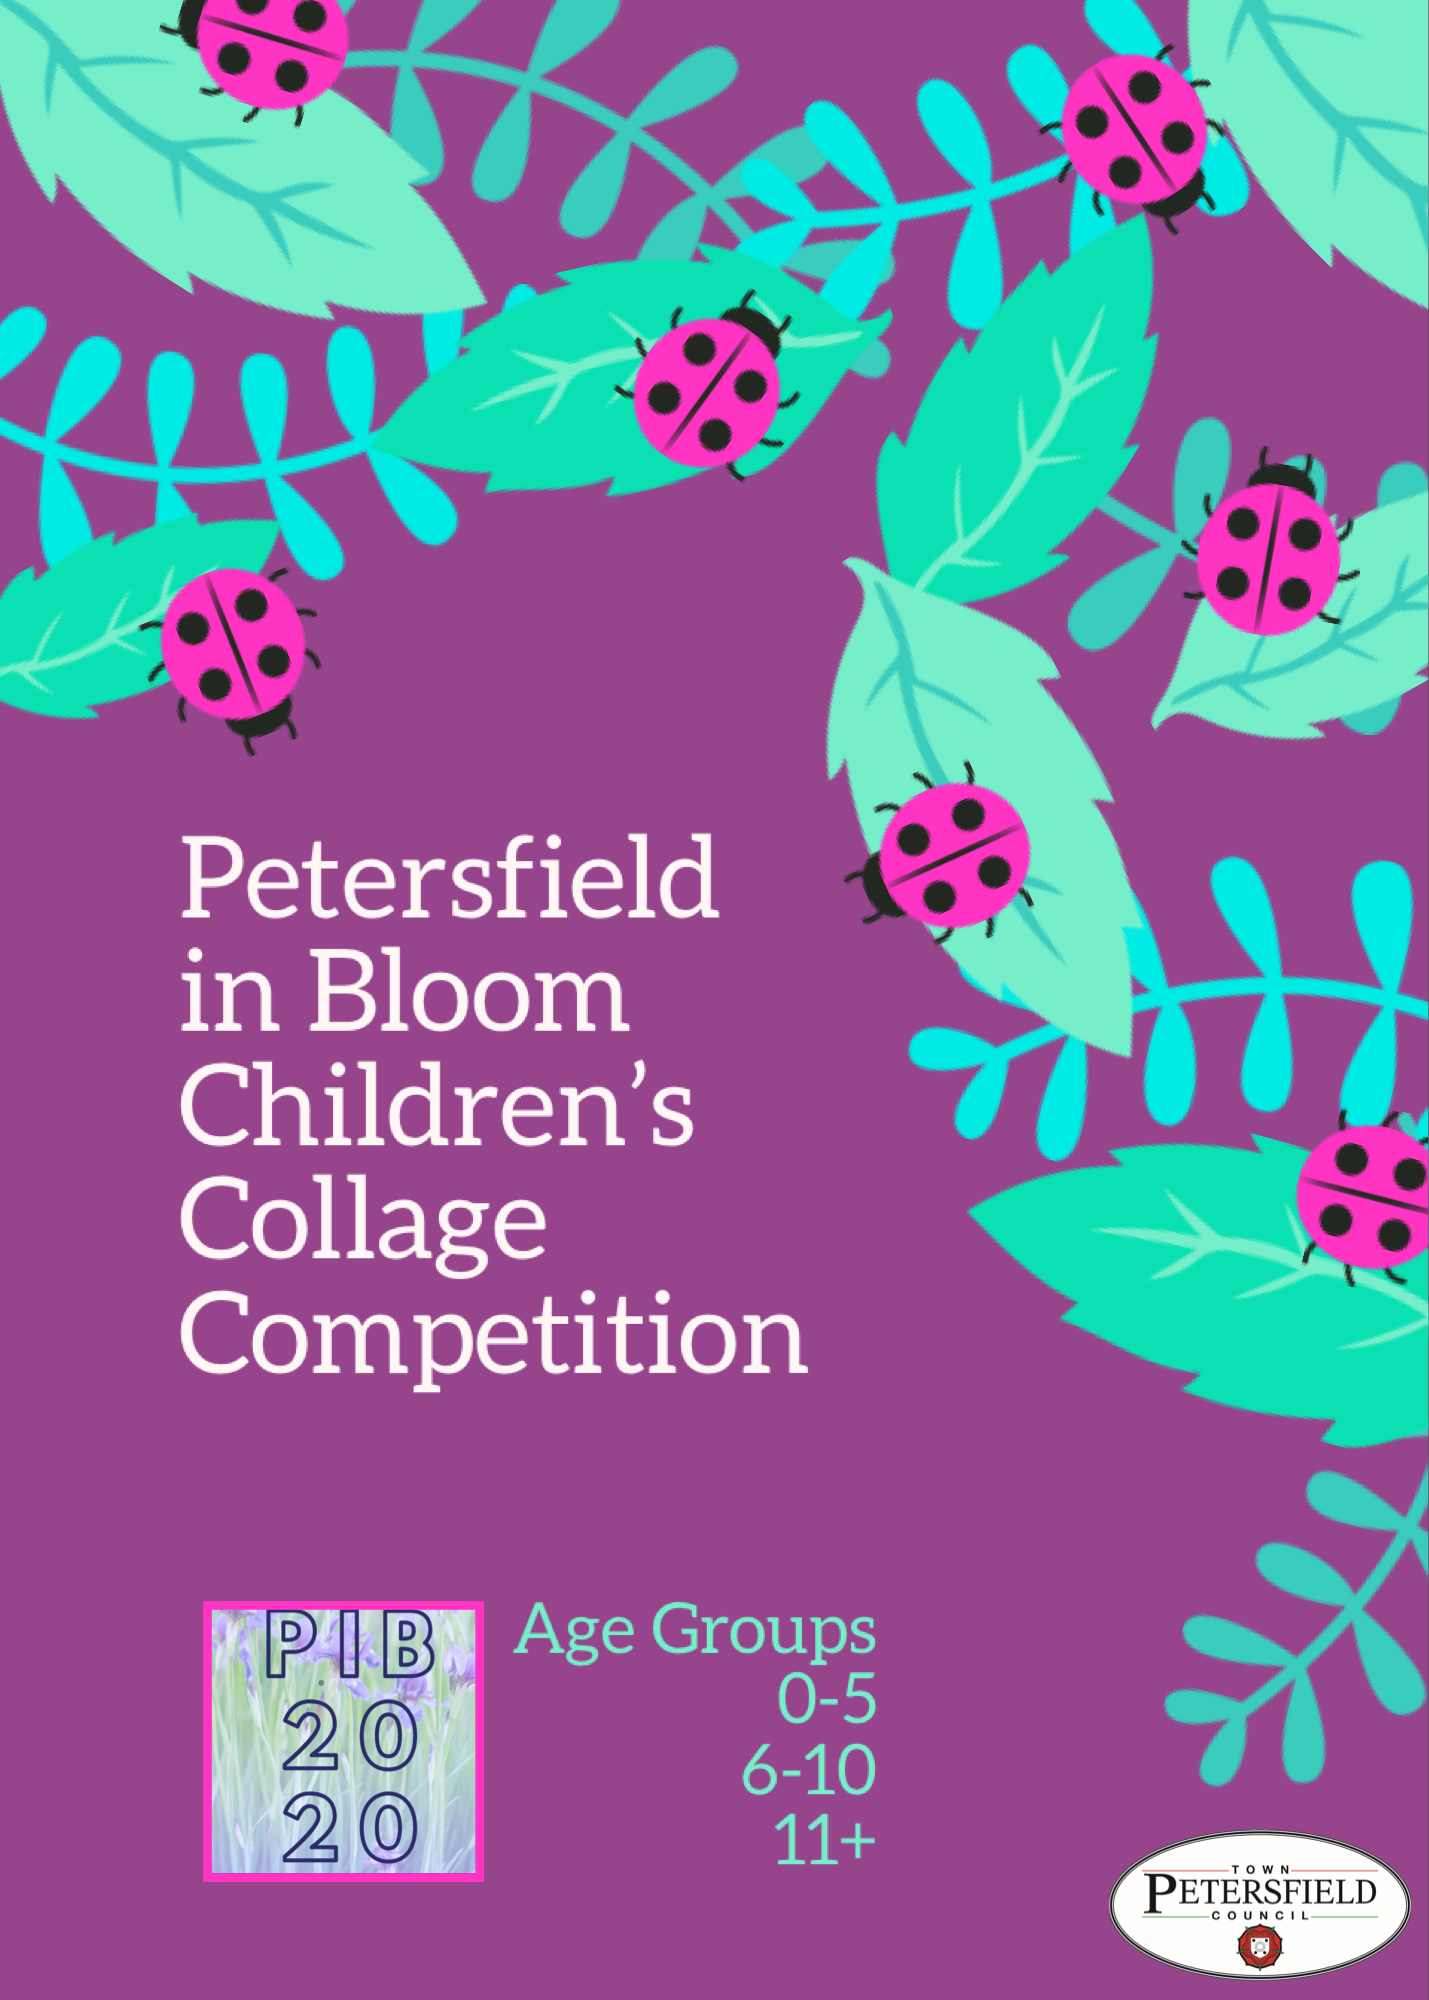 petersfield in bloom collage competition poster